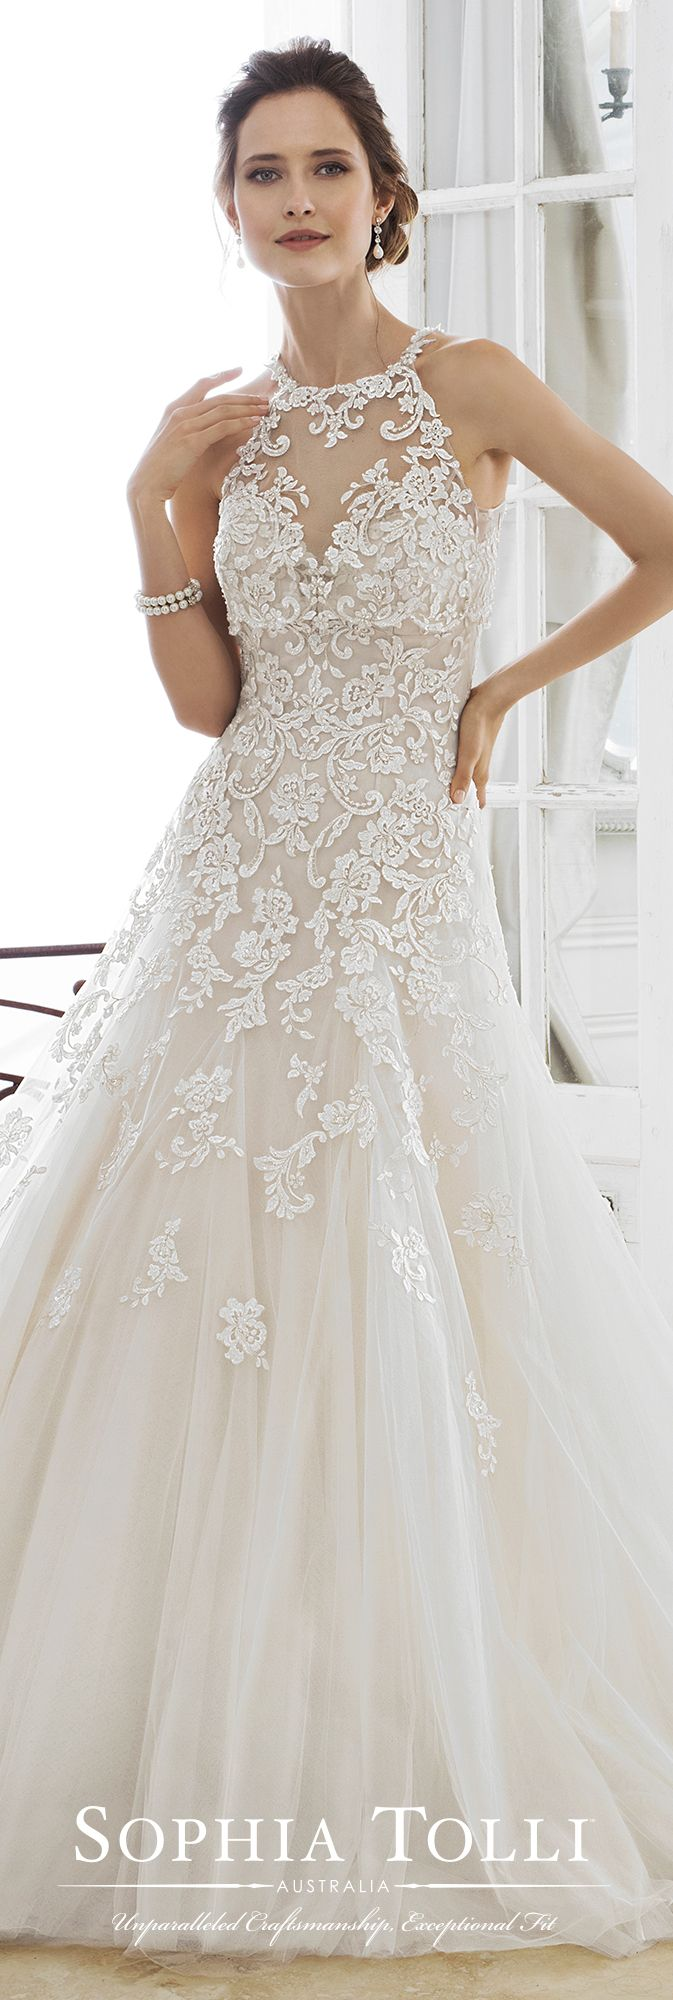 Modest Strapless Dropped Waist Lace Fairytale Wedding